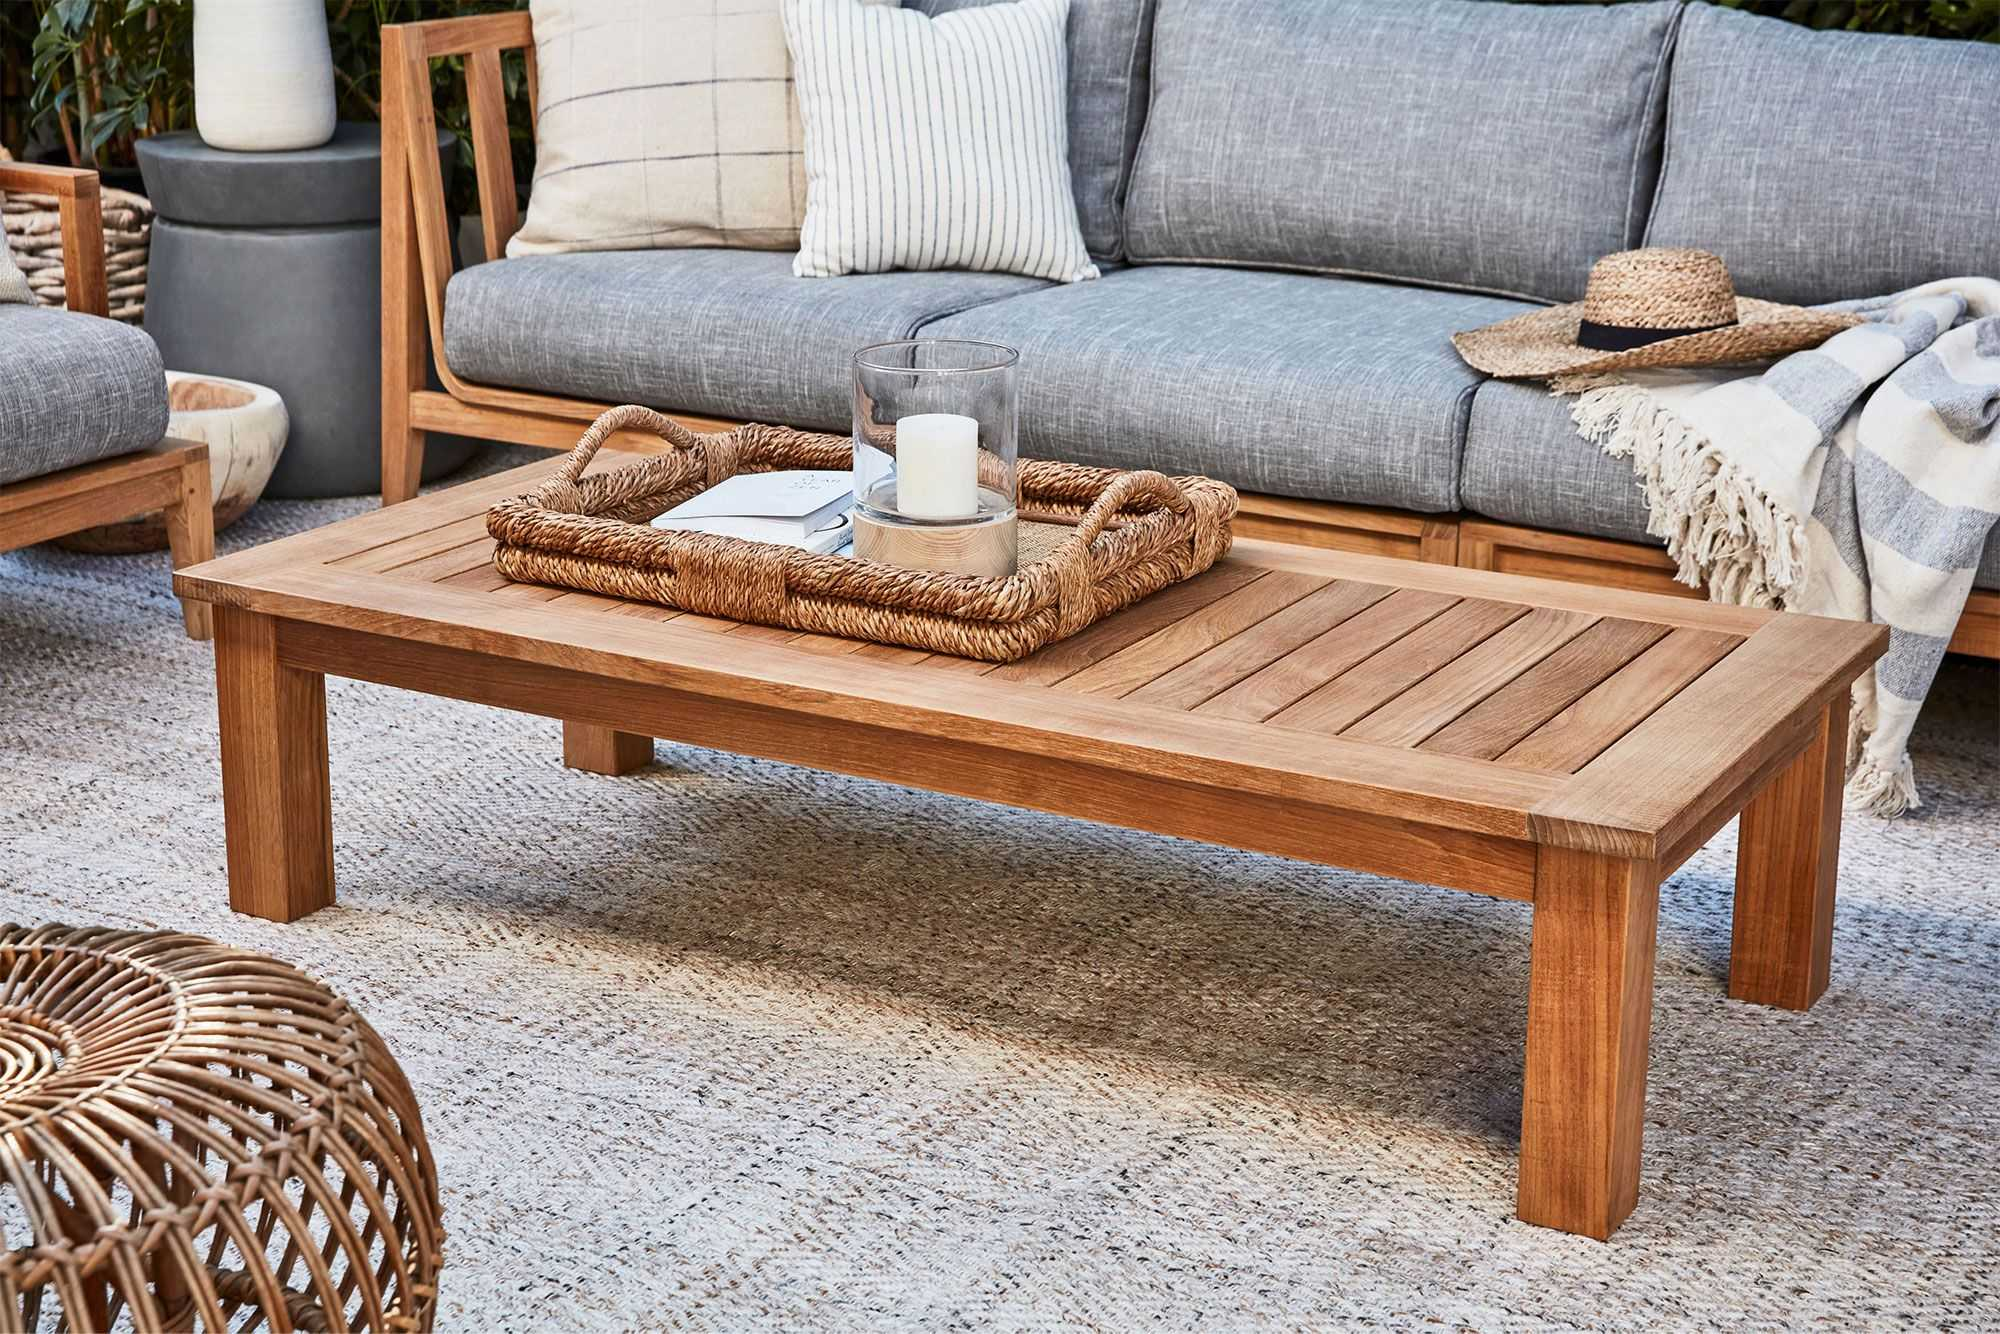 How To Choose An Outdoor Coffee Table: The Complete Buying Guide